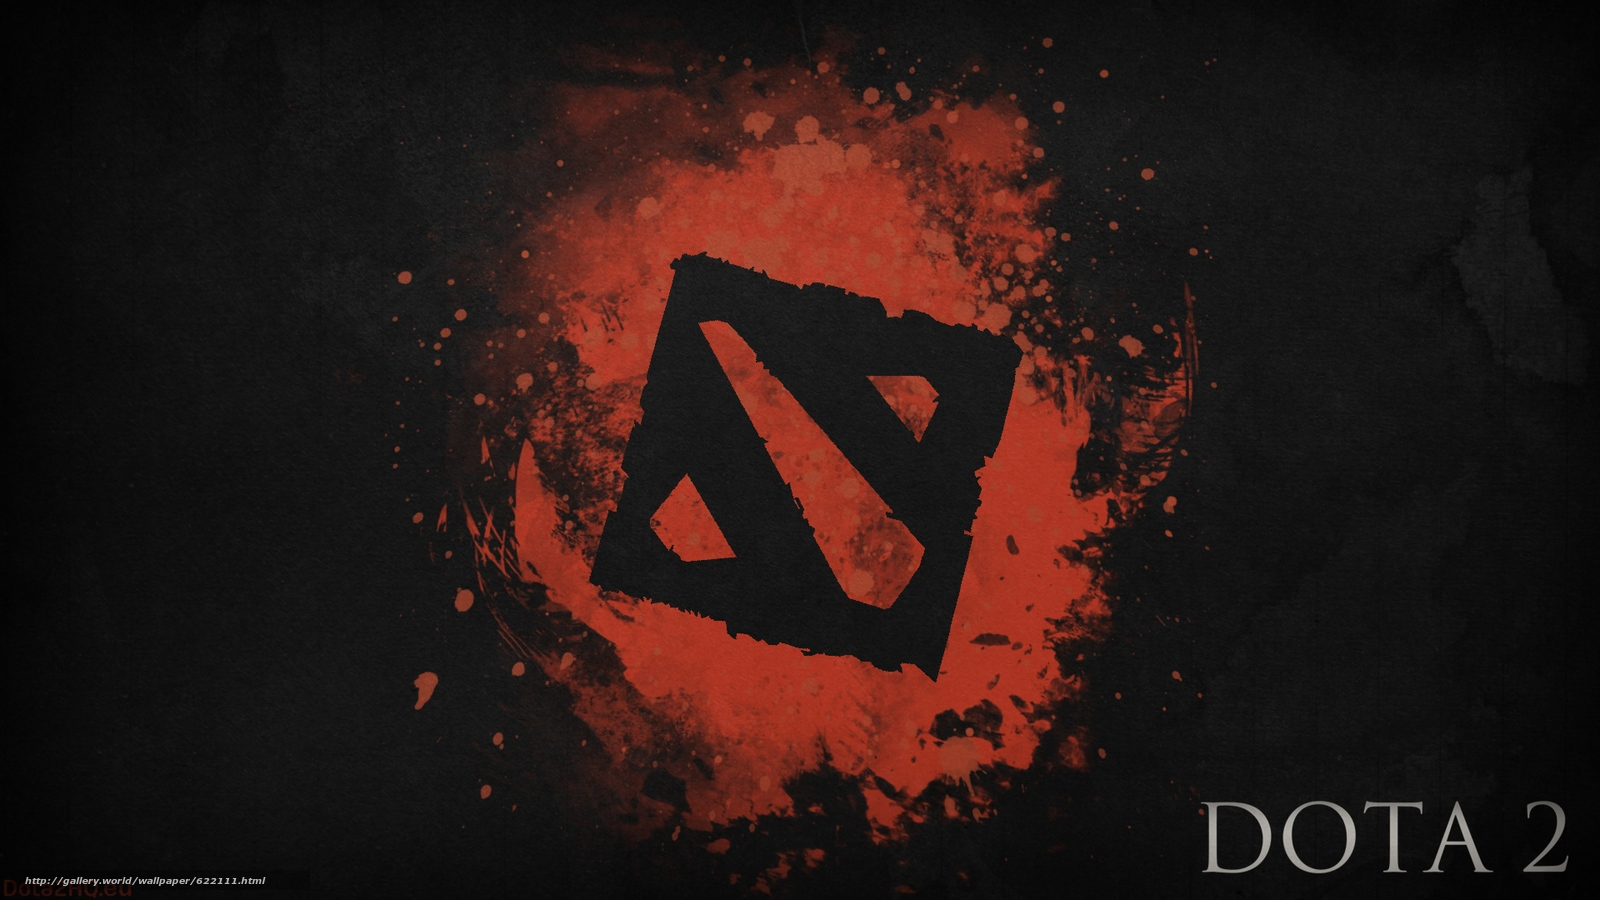 Download wallpaper dota dota 2 dota 2 steam free desktop wallpaper in the resolution 3840x2160 picture 622111